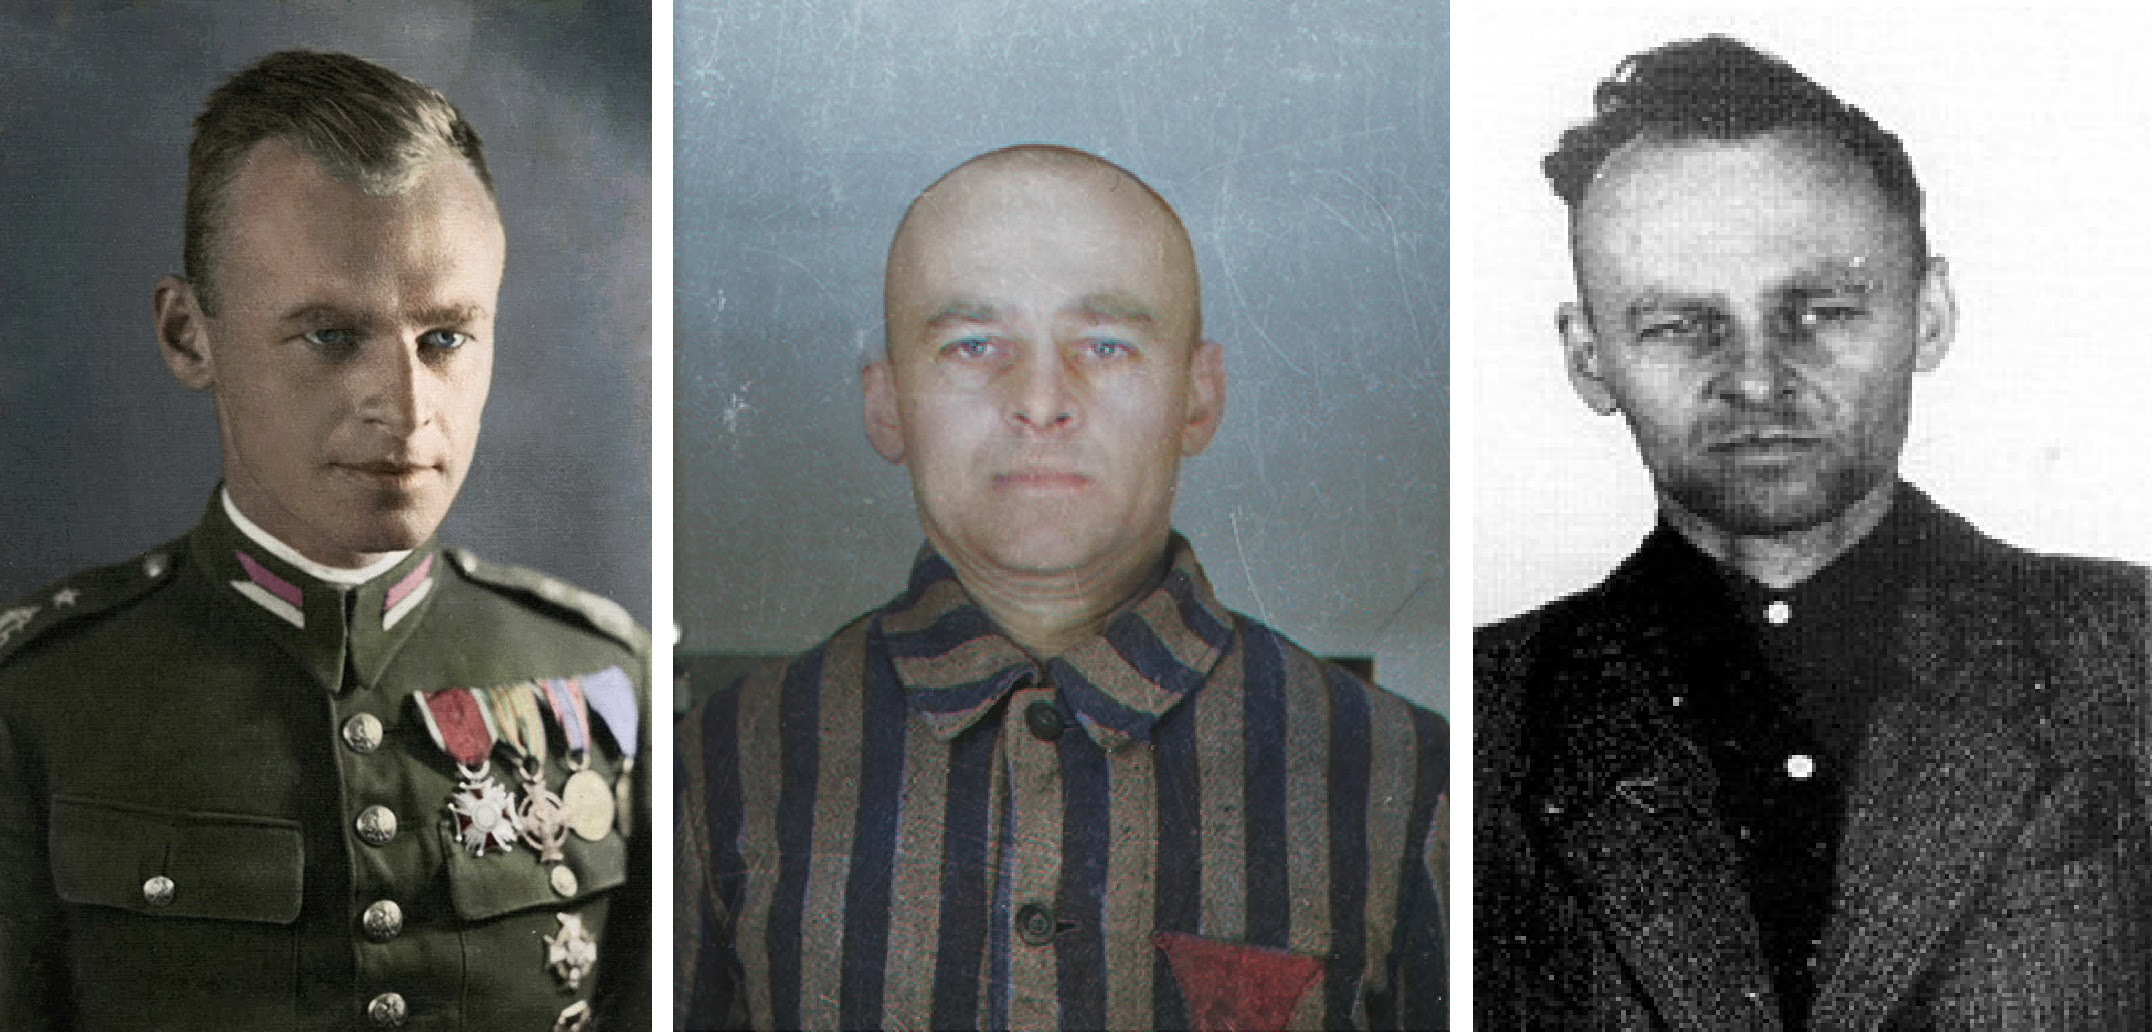 Witold Pilecki's Heroism in the Face of Unspeakable Evil - History Arch